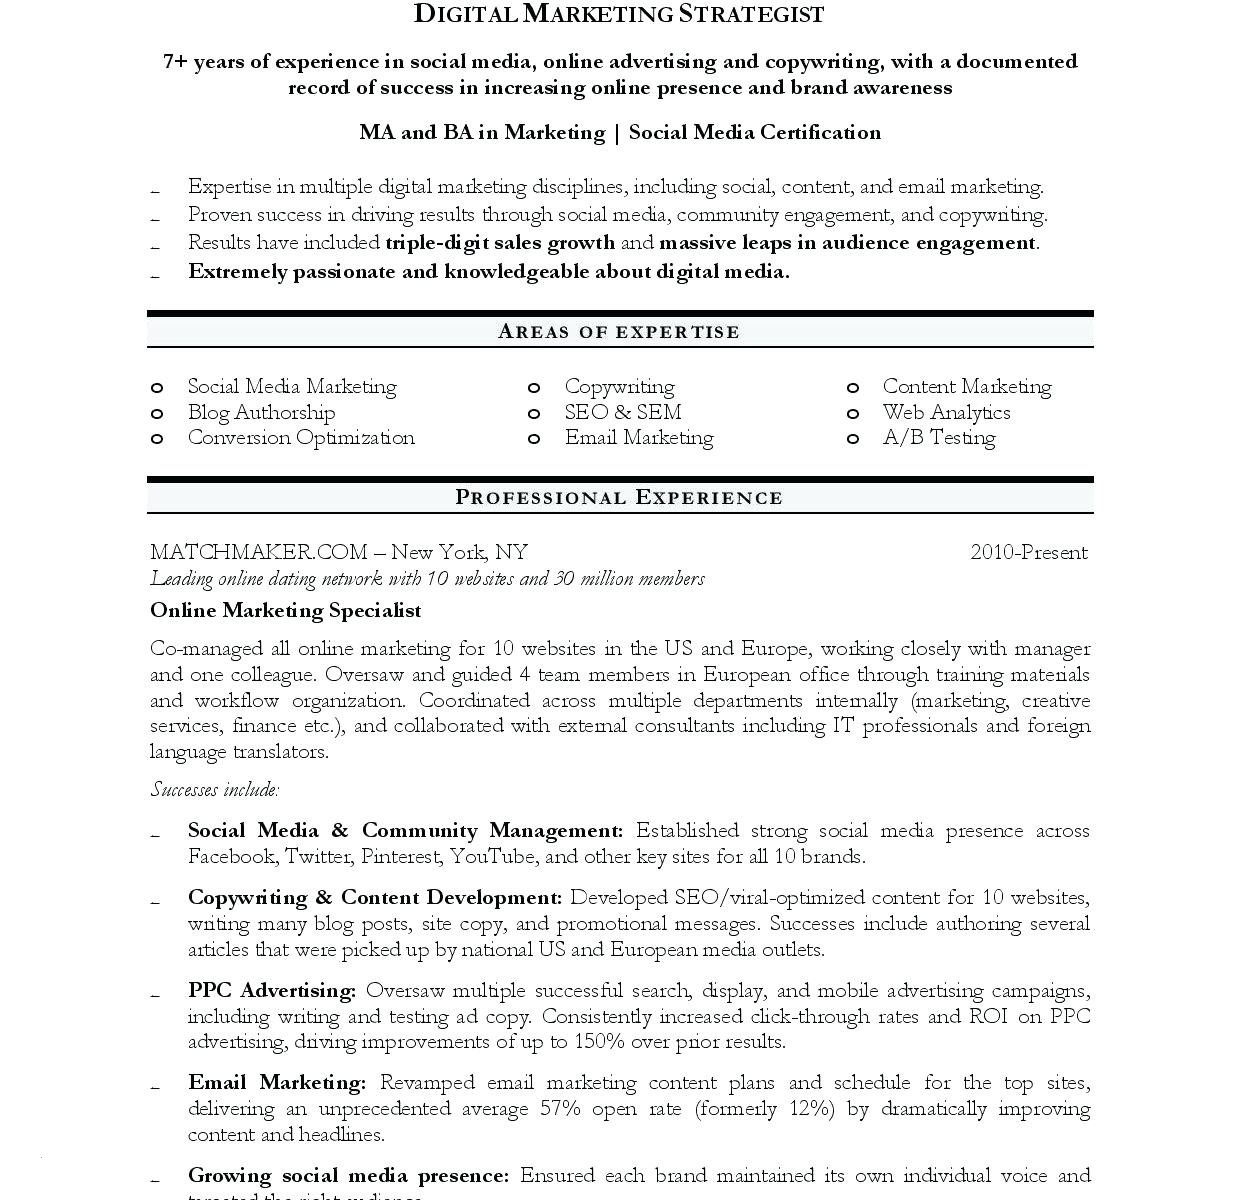 Social Media Specialist Resume - Digital Marketing Resume Template New Email Marketing Resume Sample